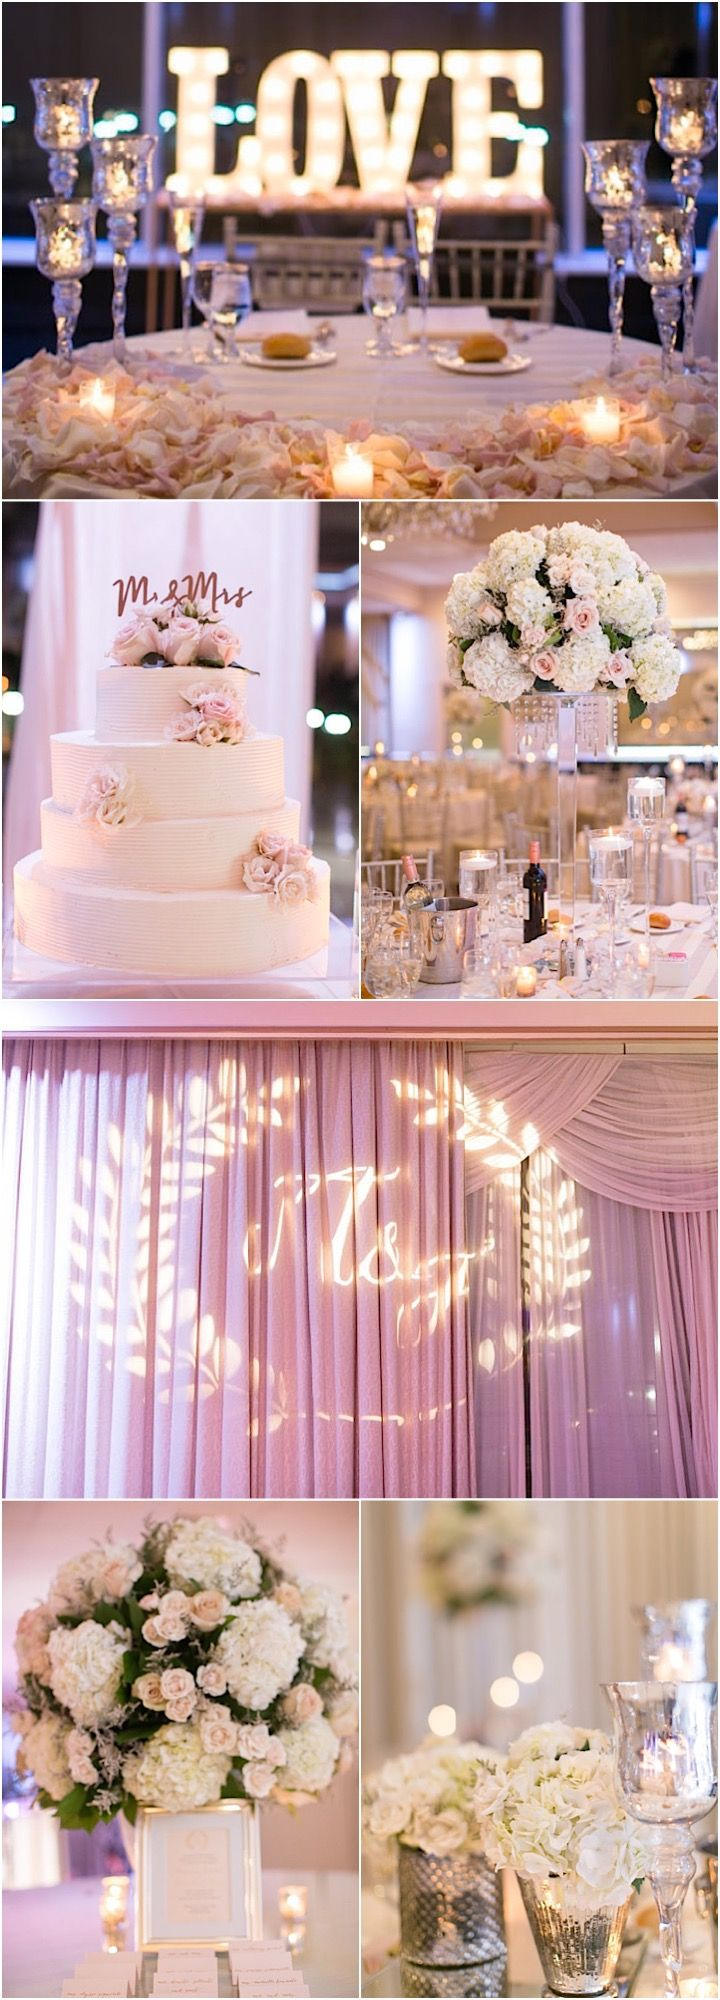 Blush pink and white ballroom wedding reception idea; featured photographer: Amy Rizzuto